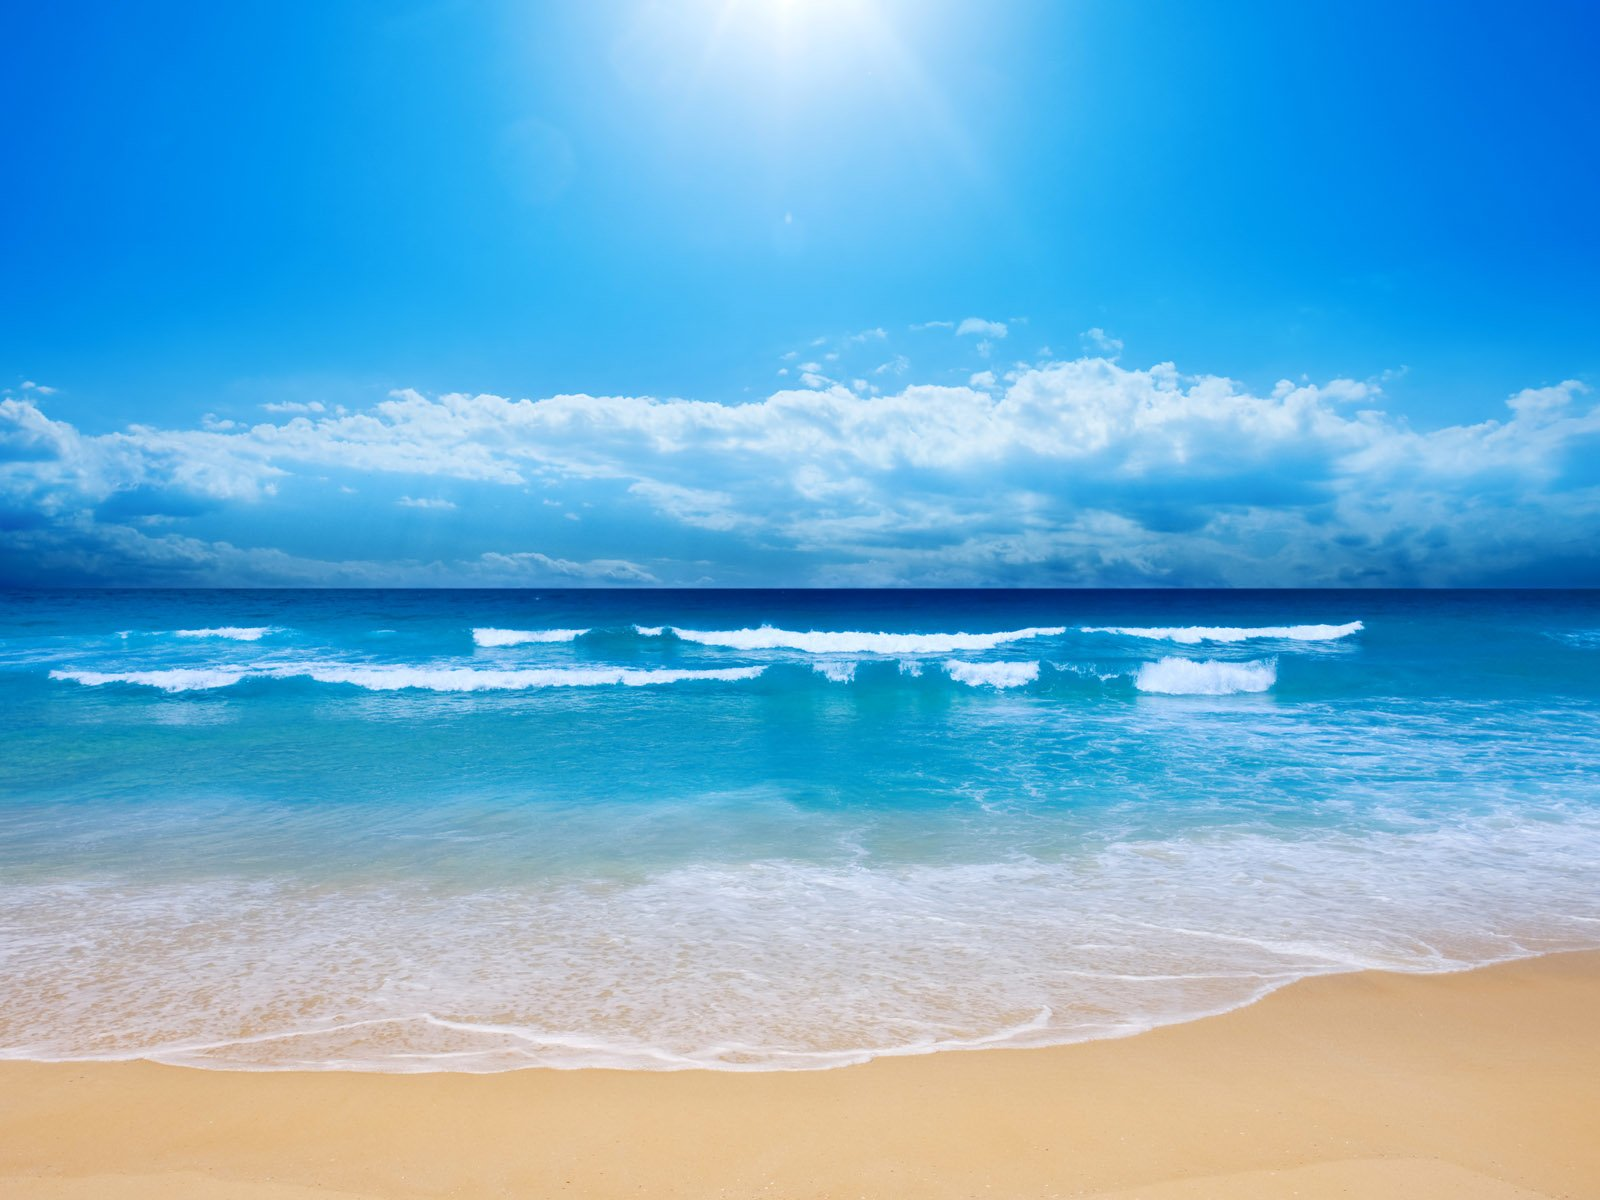 1488 Beach HD Wallpapers | Backgrounds - Wallpaper Abyss